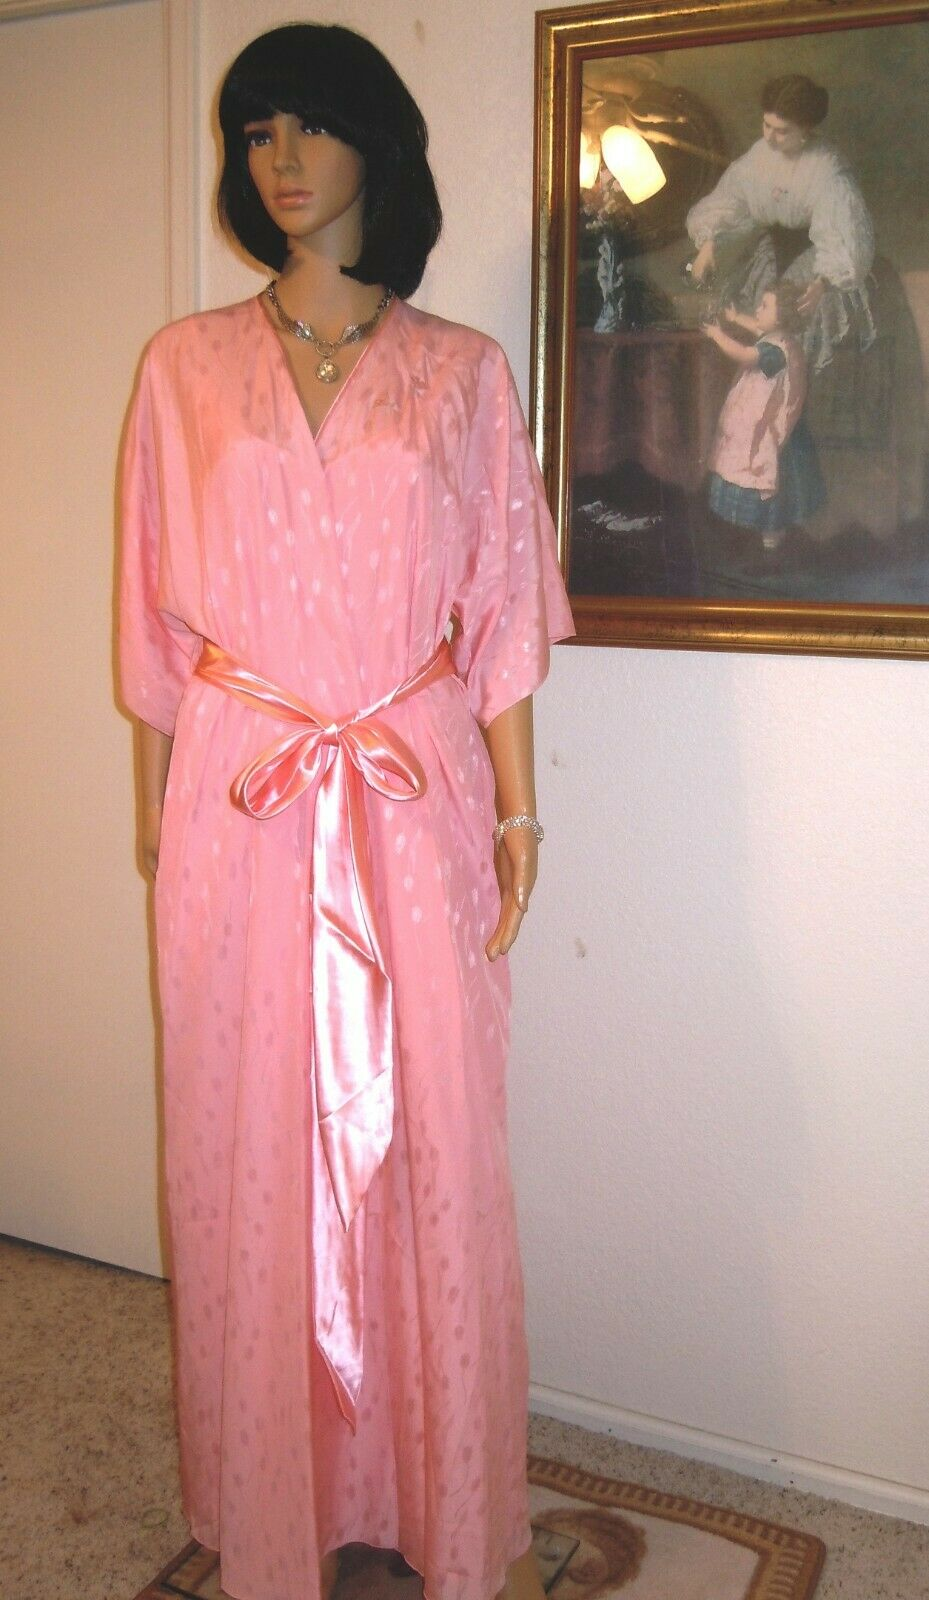 CLAIRE SANDRA by LUCIE ANN BEVERLY HILLS VTG CORAL PINK Peigblack Set size Small